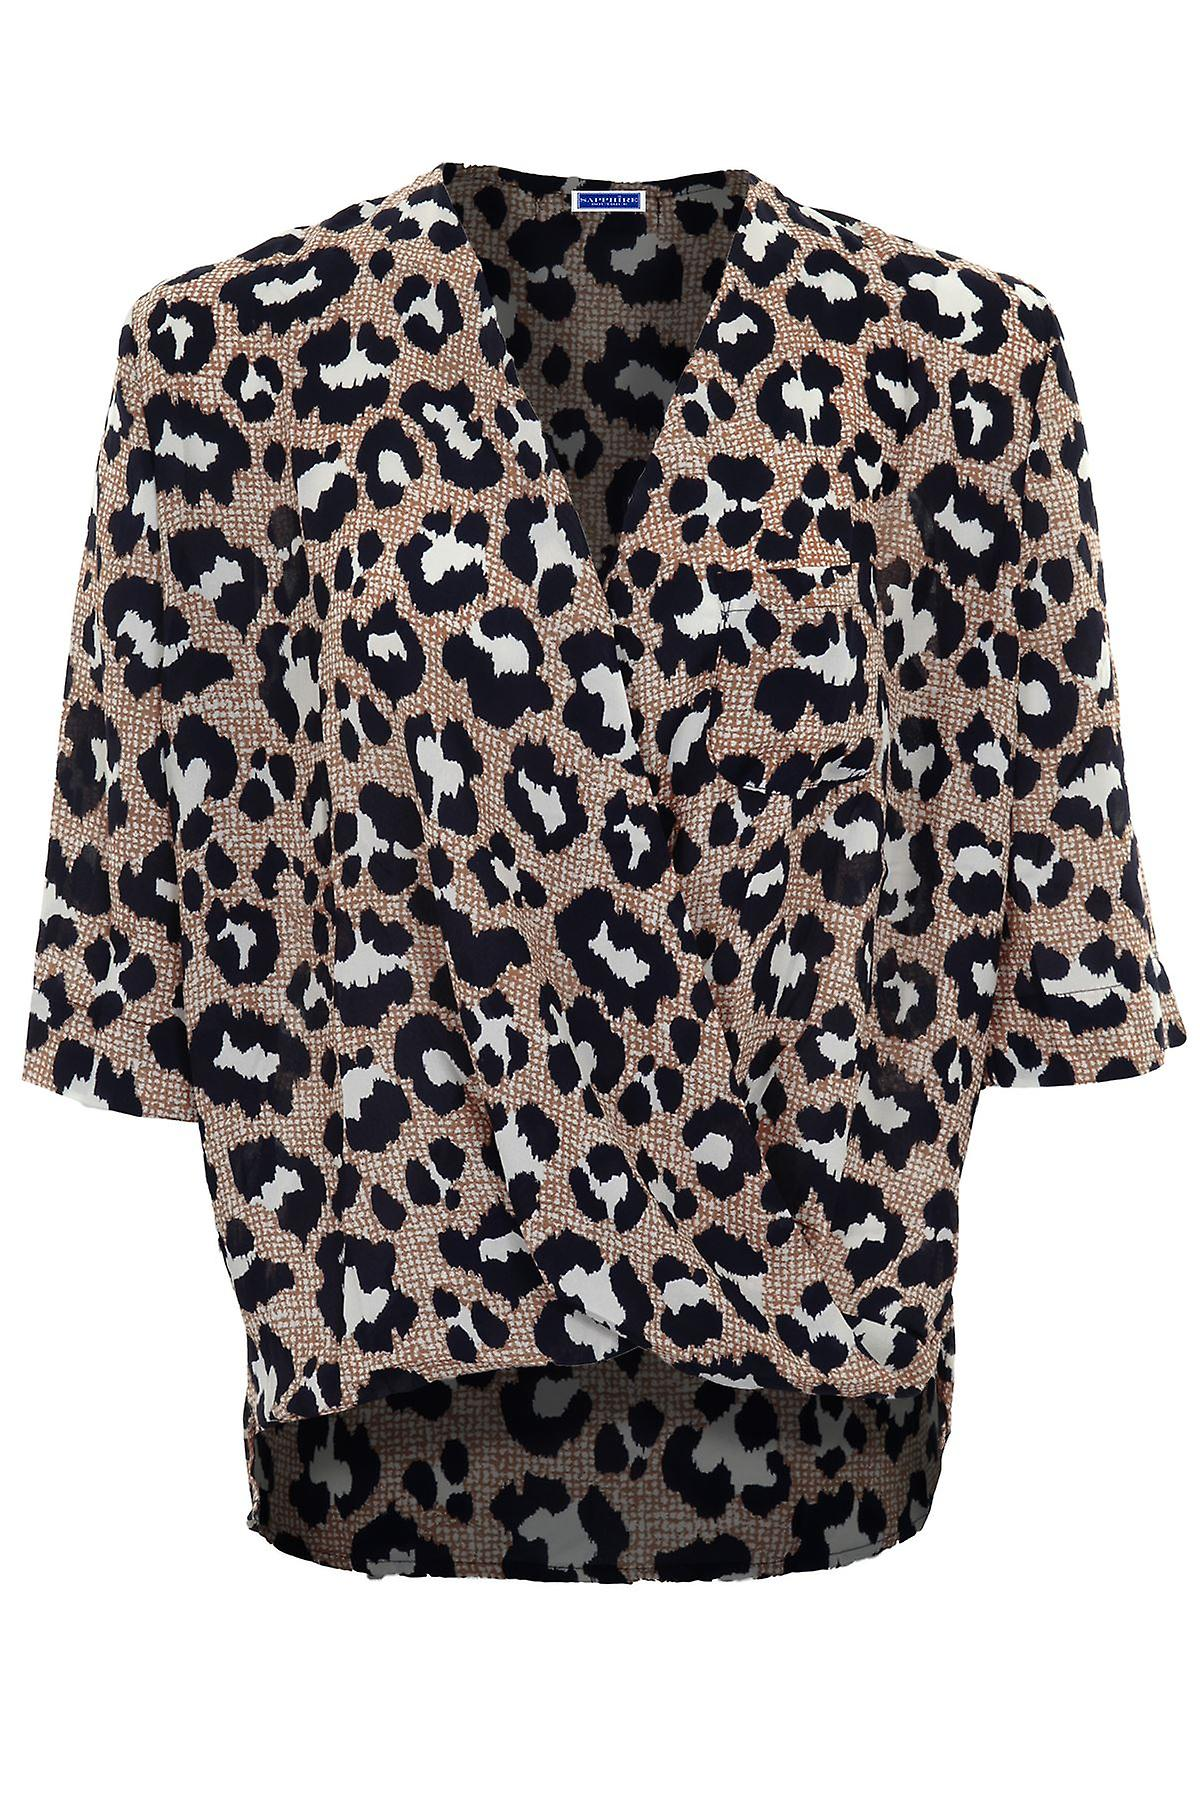 Ladies Open Front Wrap V Neck 3/4 Sleeve Leopard Loose Chiffon Blouse Top